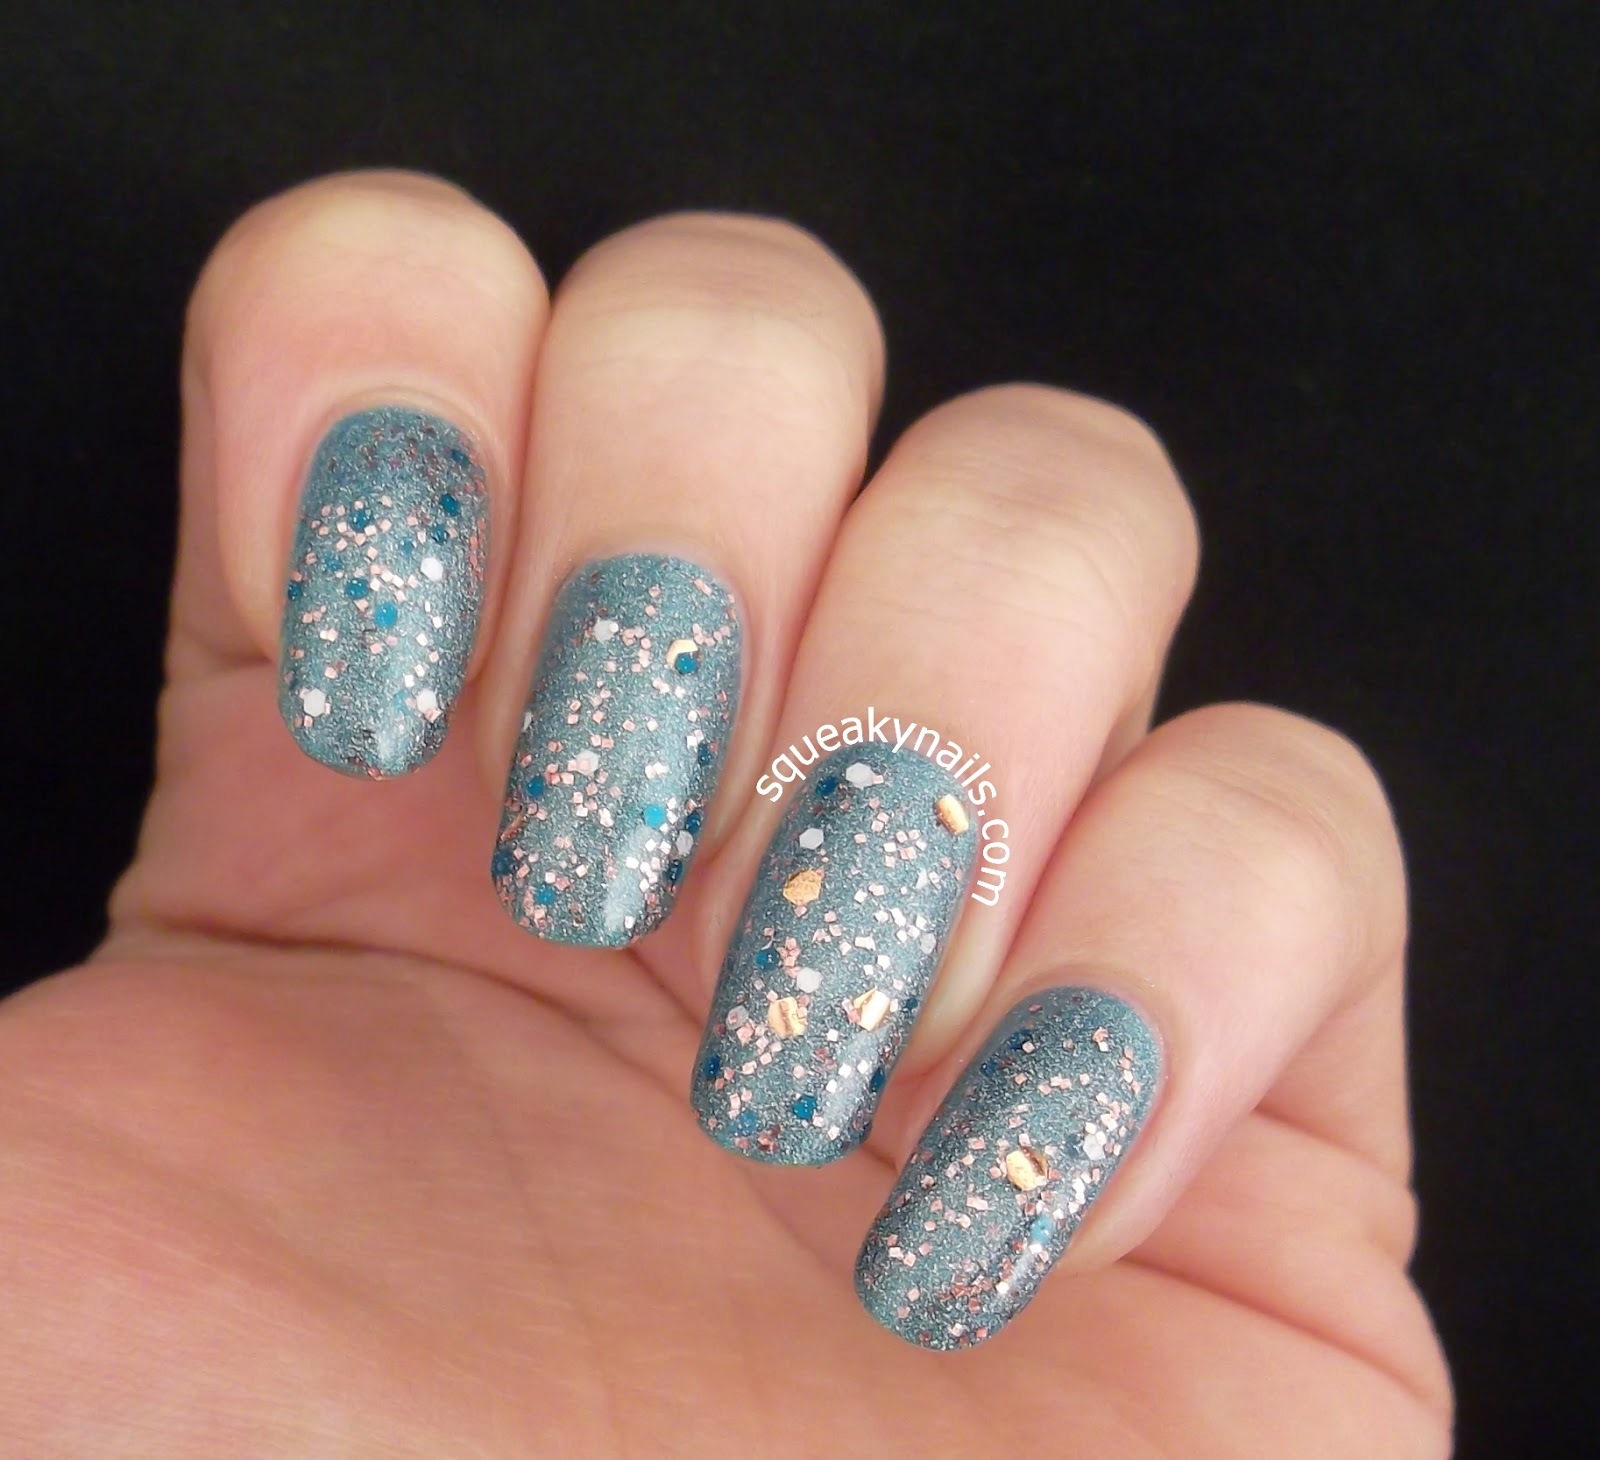 Canvas Lacquer Yorkville Splurge over Canvas Lacquer Polar Bear Dip | Squeaky Nails